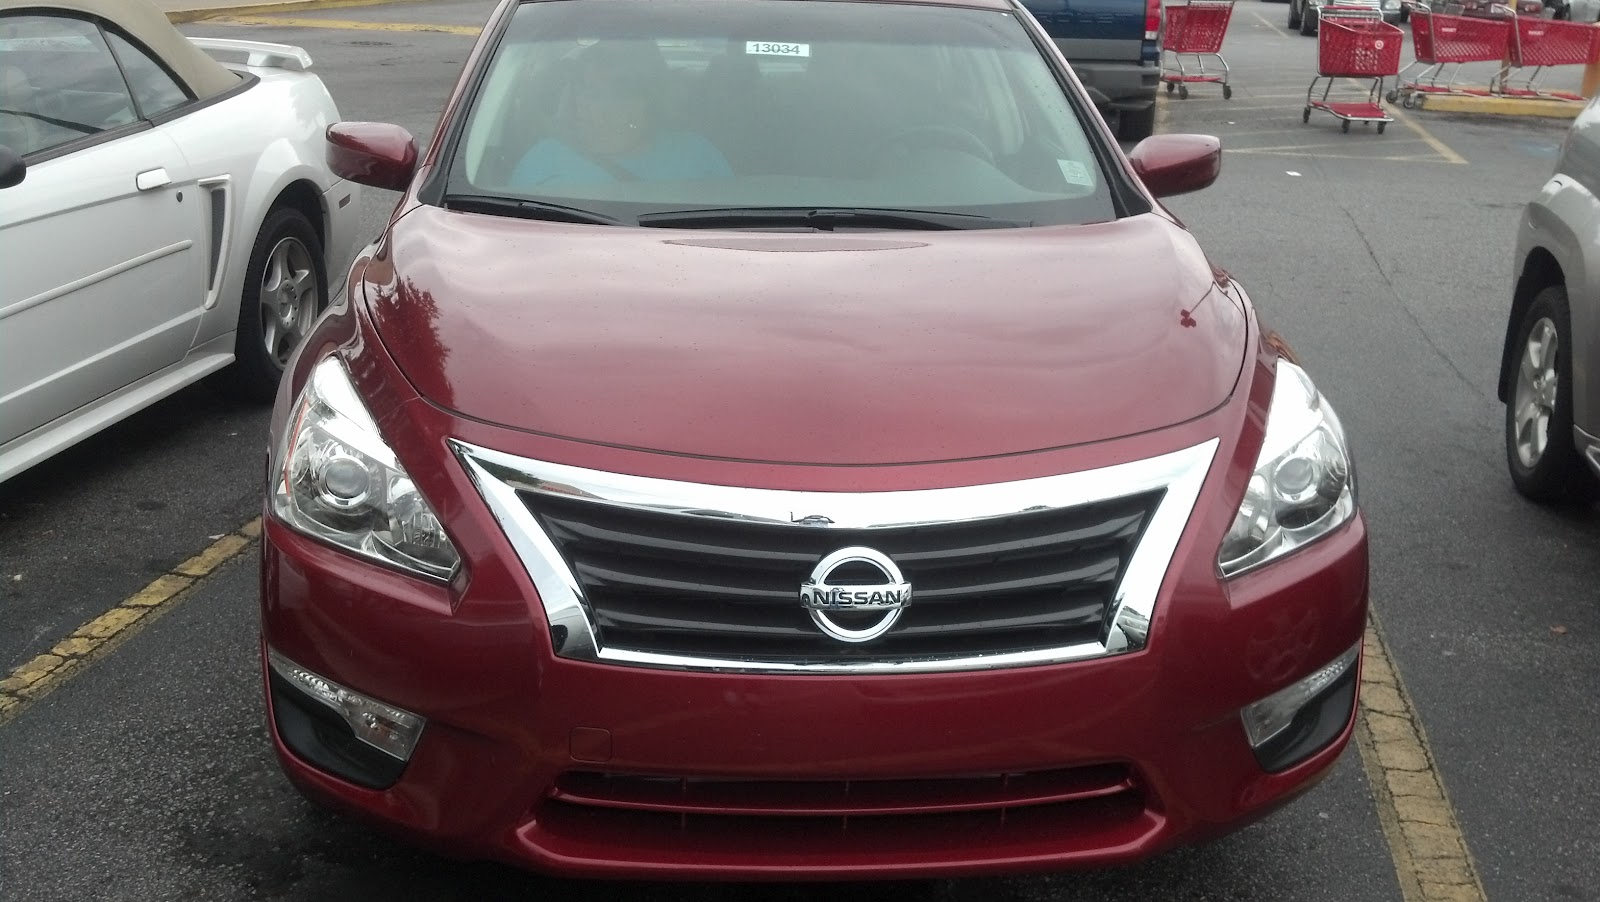 Review: 2013 Nissan Altima 2.5 SV